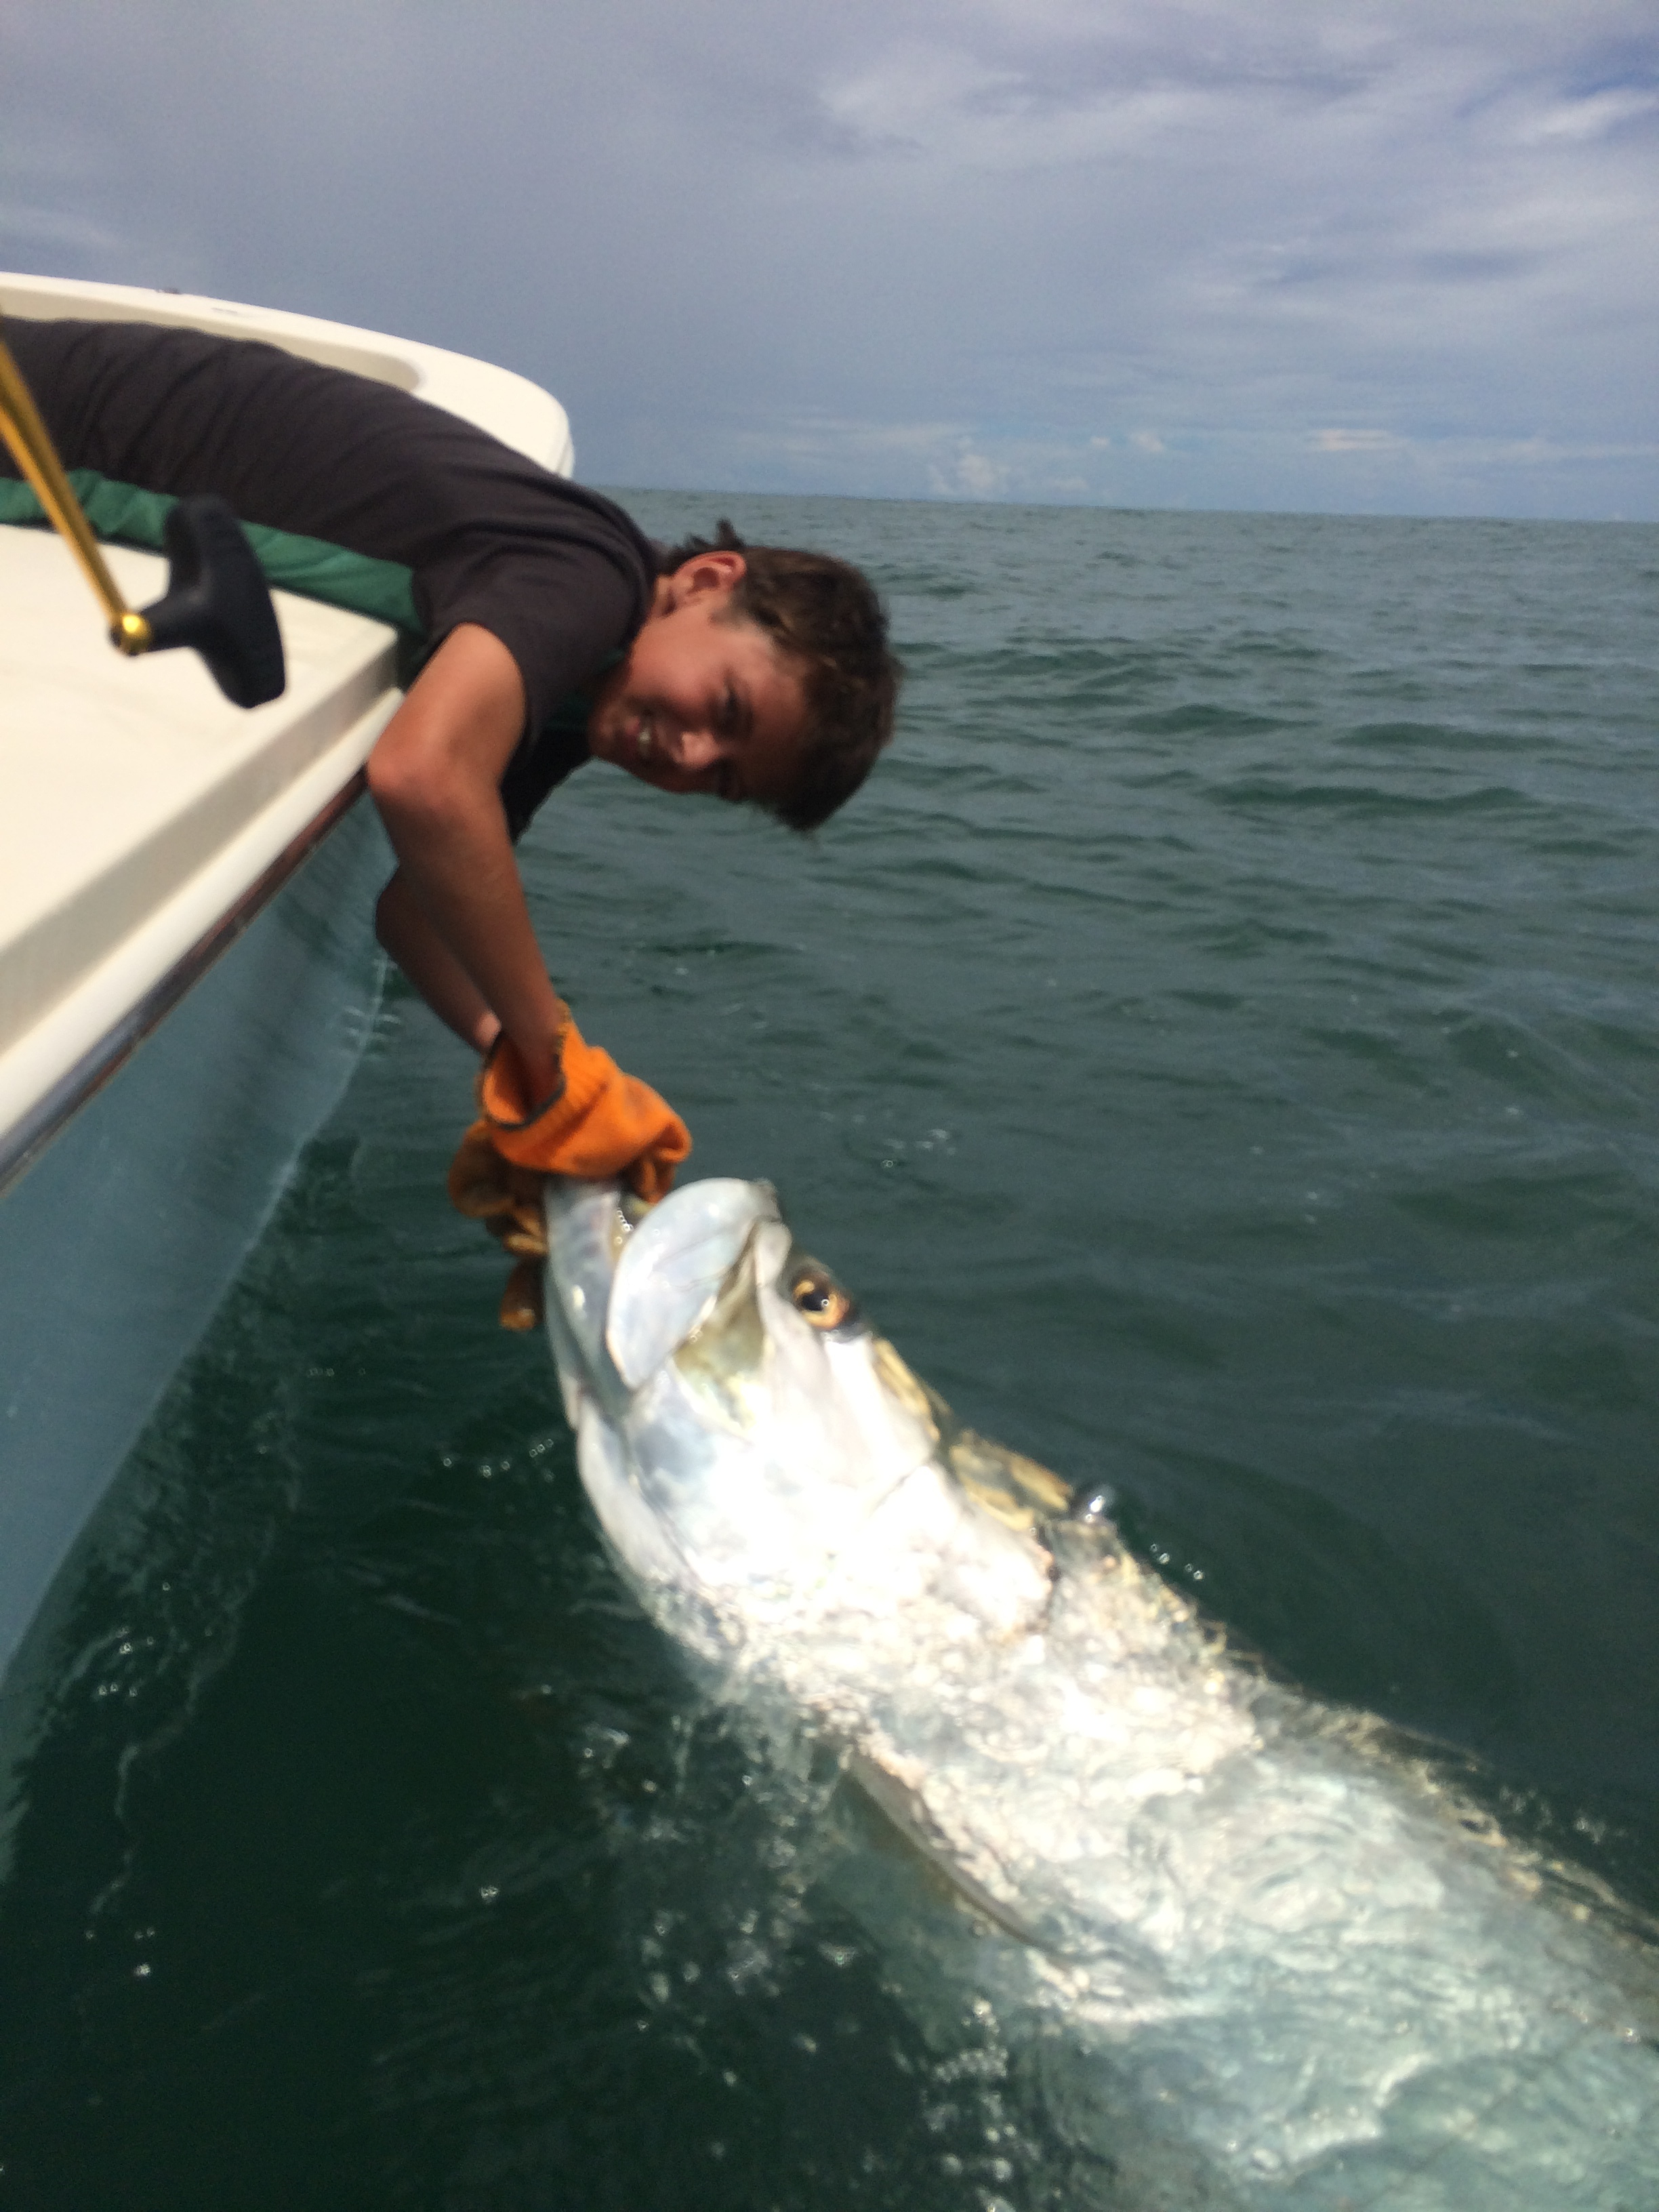 Reeling in Giant Tarpon on Fishing Charter